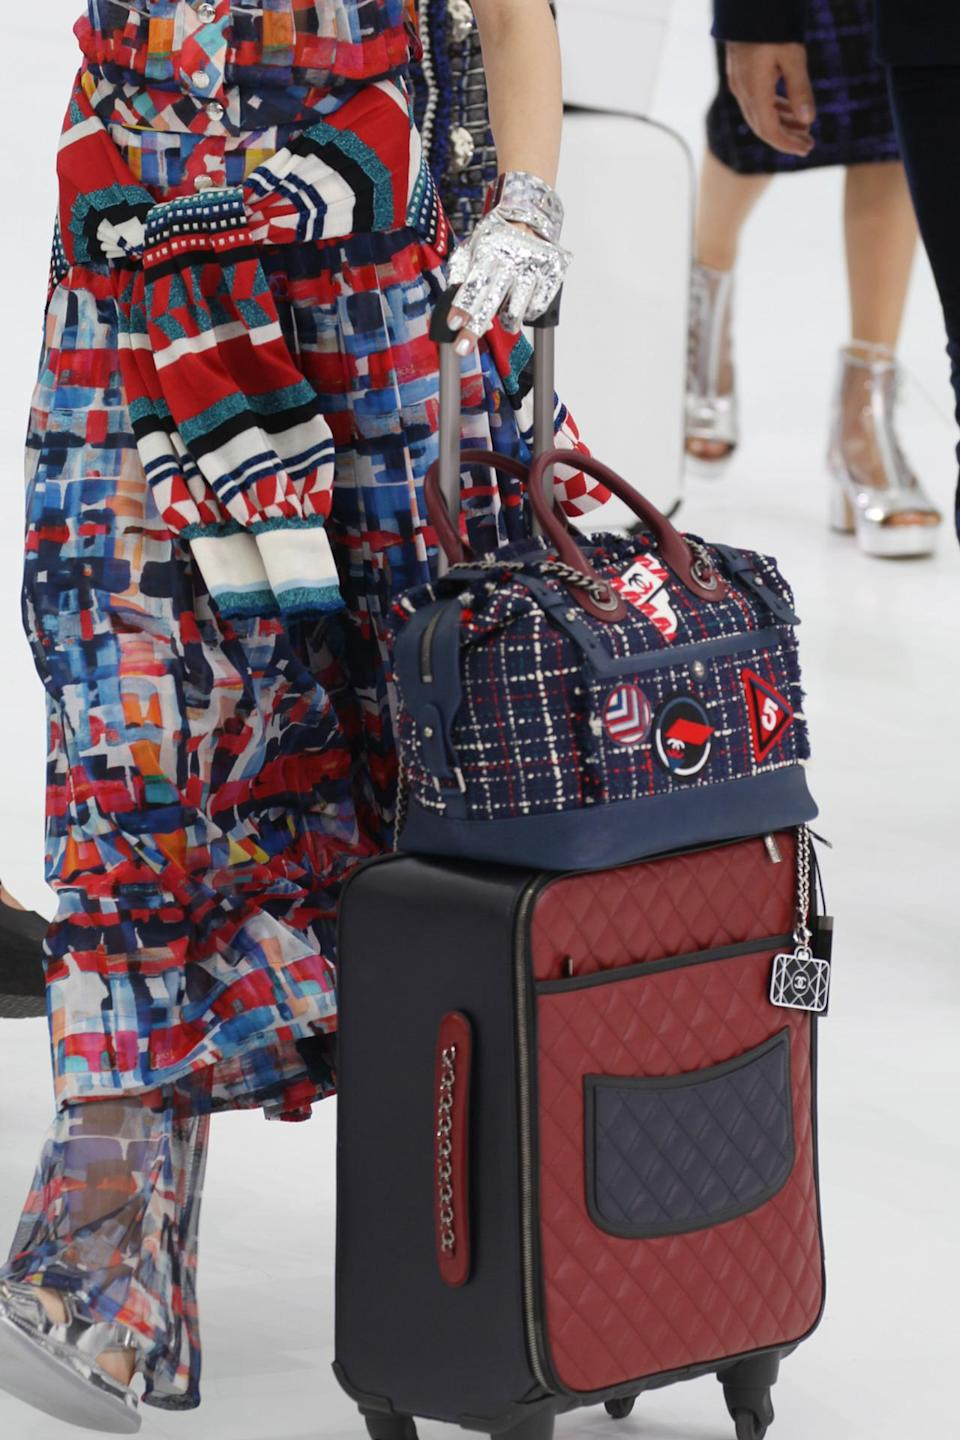 <p>If you can stock up on Chanel luggage this spring, the extra baggage fees probably won't be a big deal. <i>(Photo: Getty Images)</i></p>